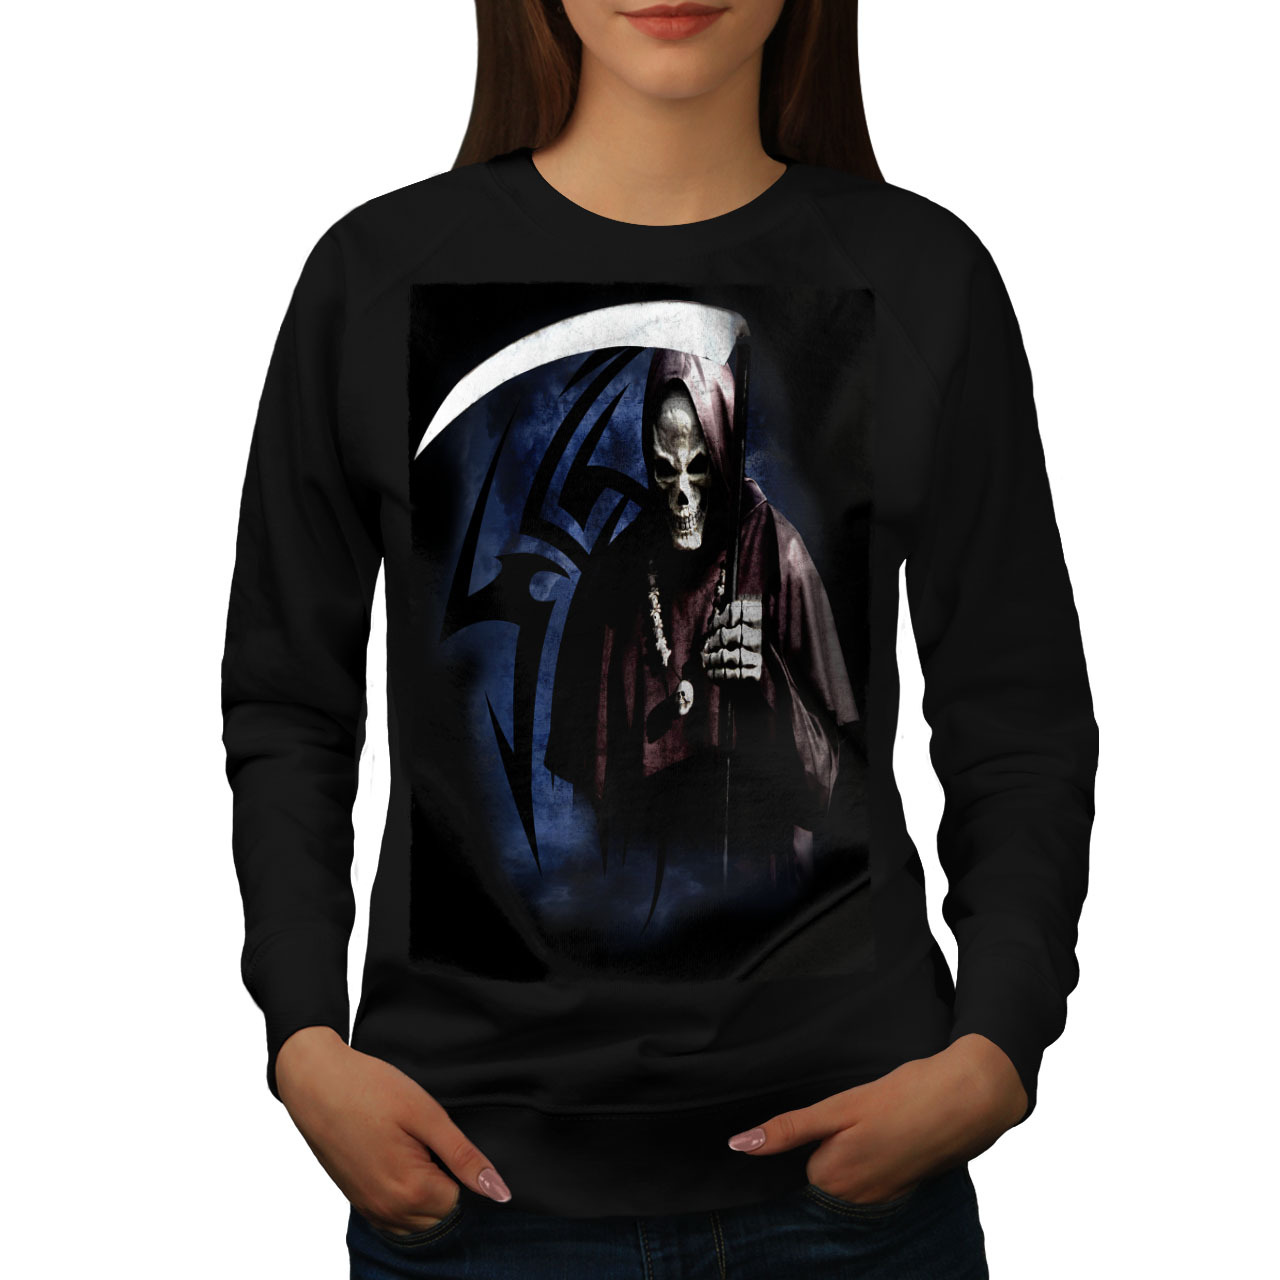 Primary image for Grim Reaper Death Horror Jumper Crazy Horror Women Sweatshirt